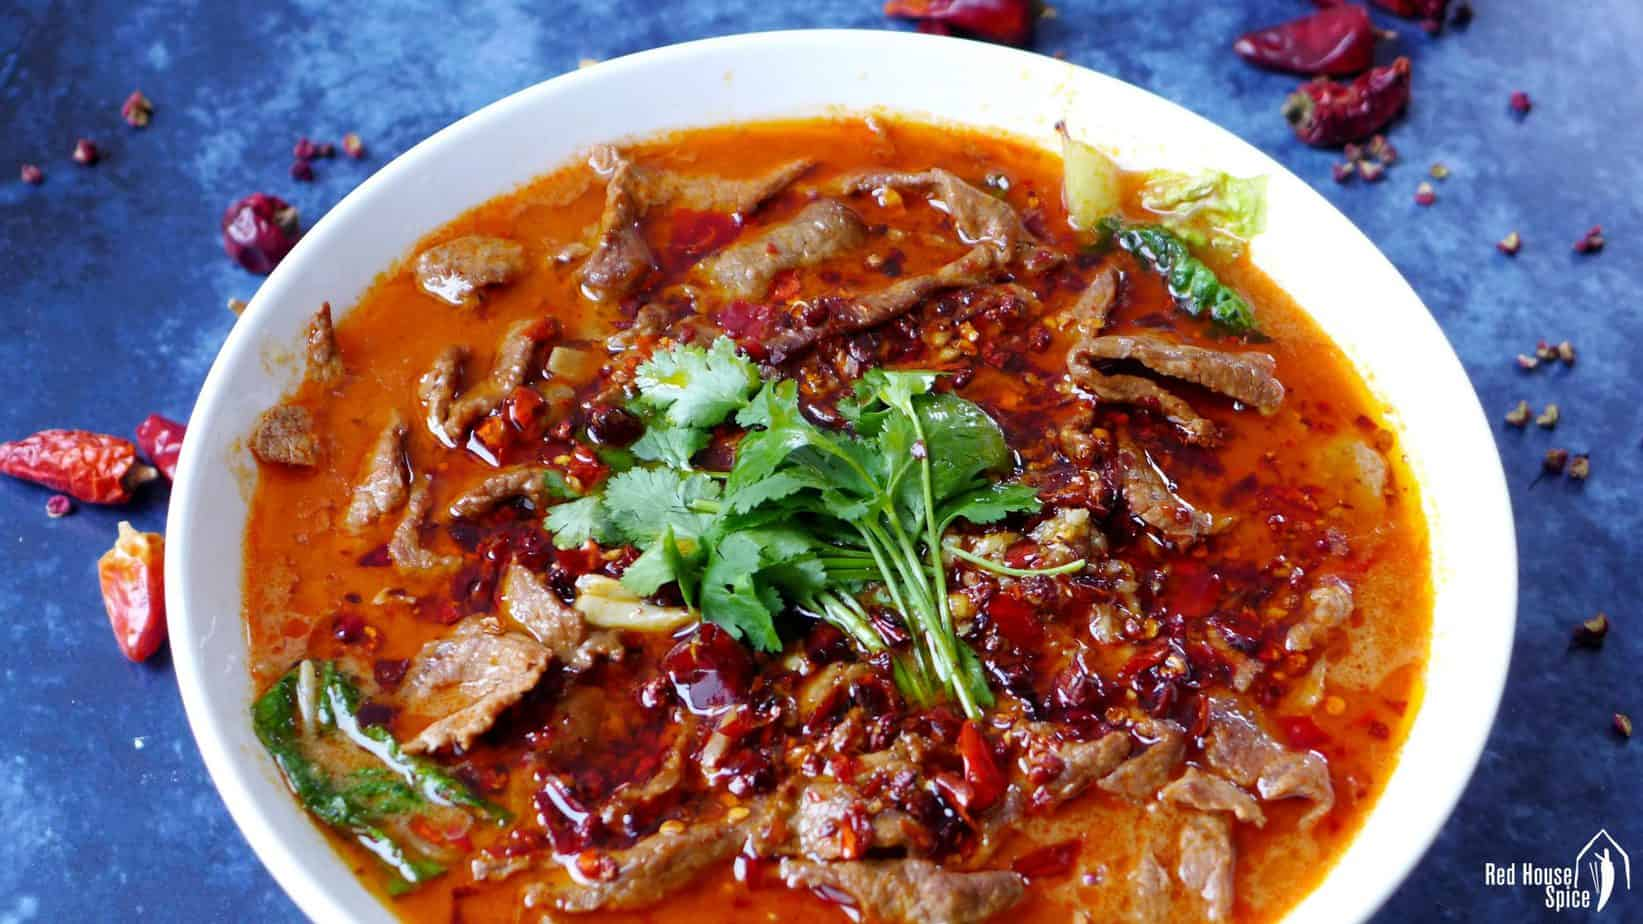 A bowl of Sichuan boiled beef